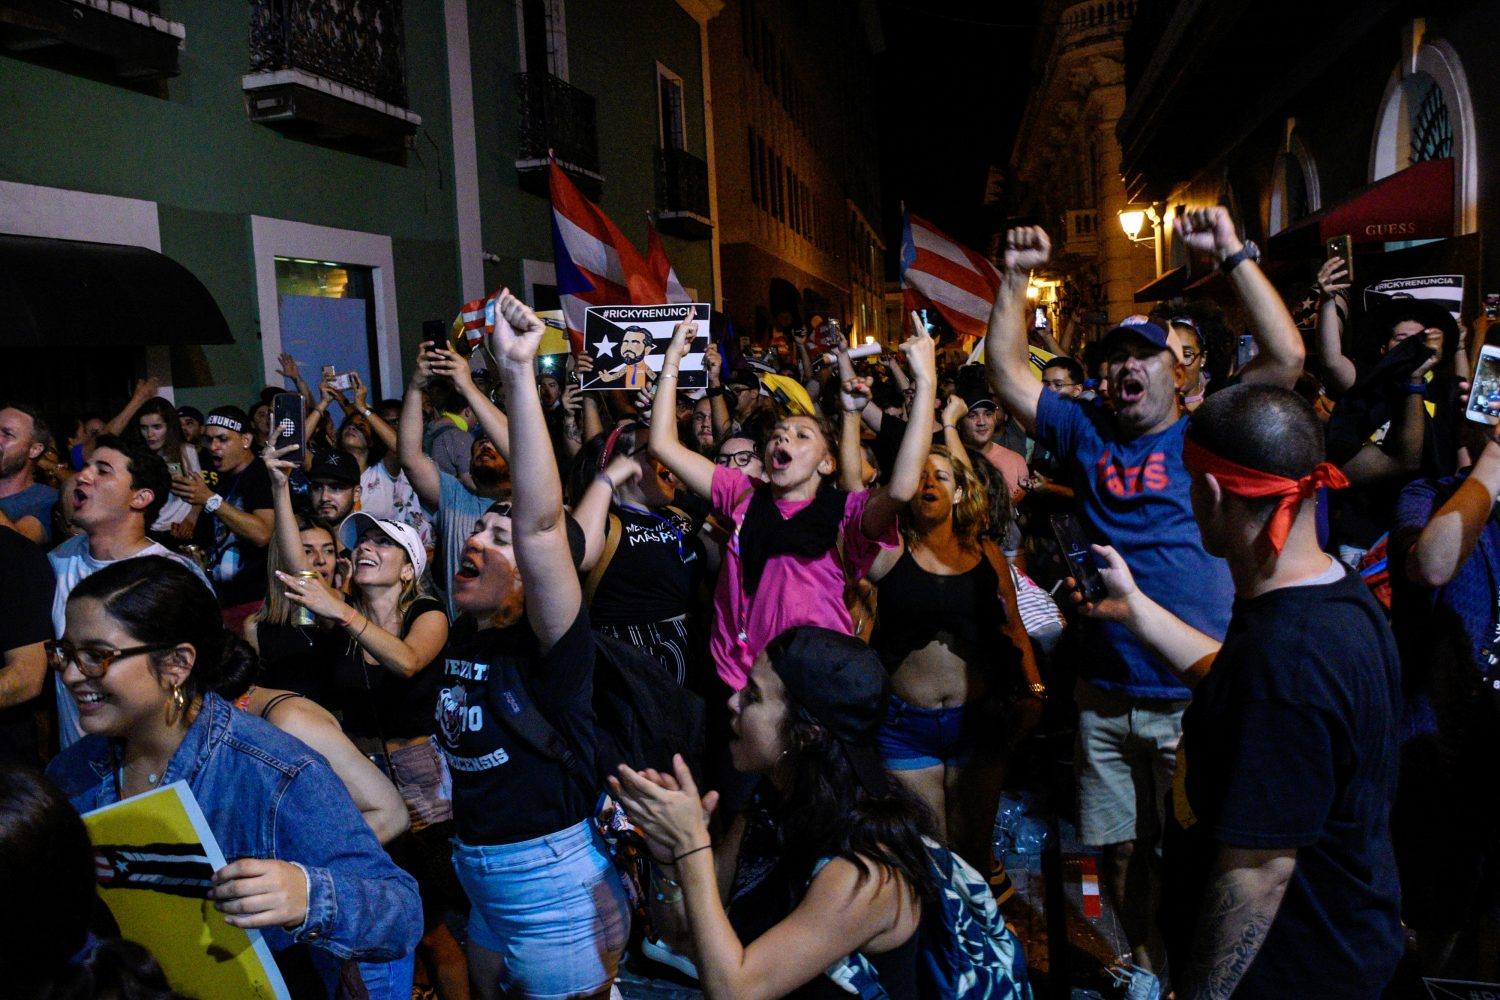 Demonstrators celebrate after the resignation of Puerto Rico Governor Ricardo Rossello in San Juan, Puerto Rico, July 24, 2019. REUTERS/Gabriella N. Baez